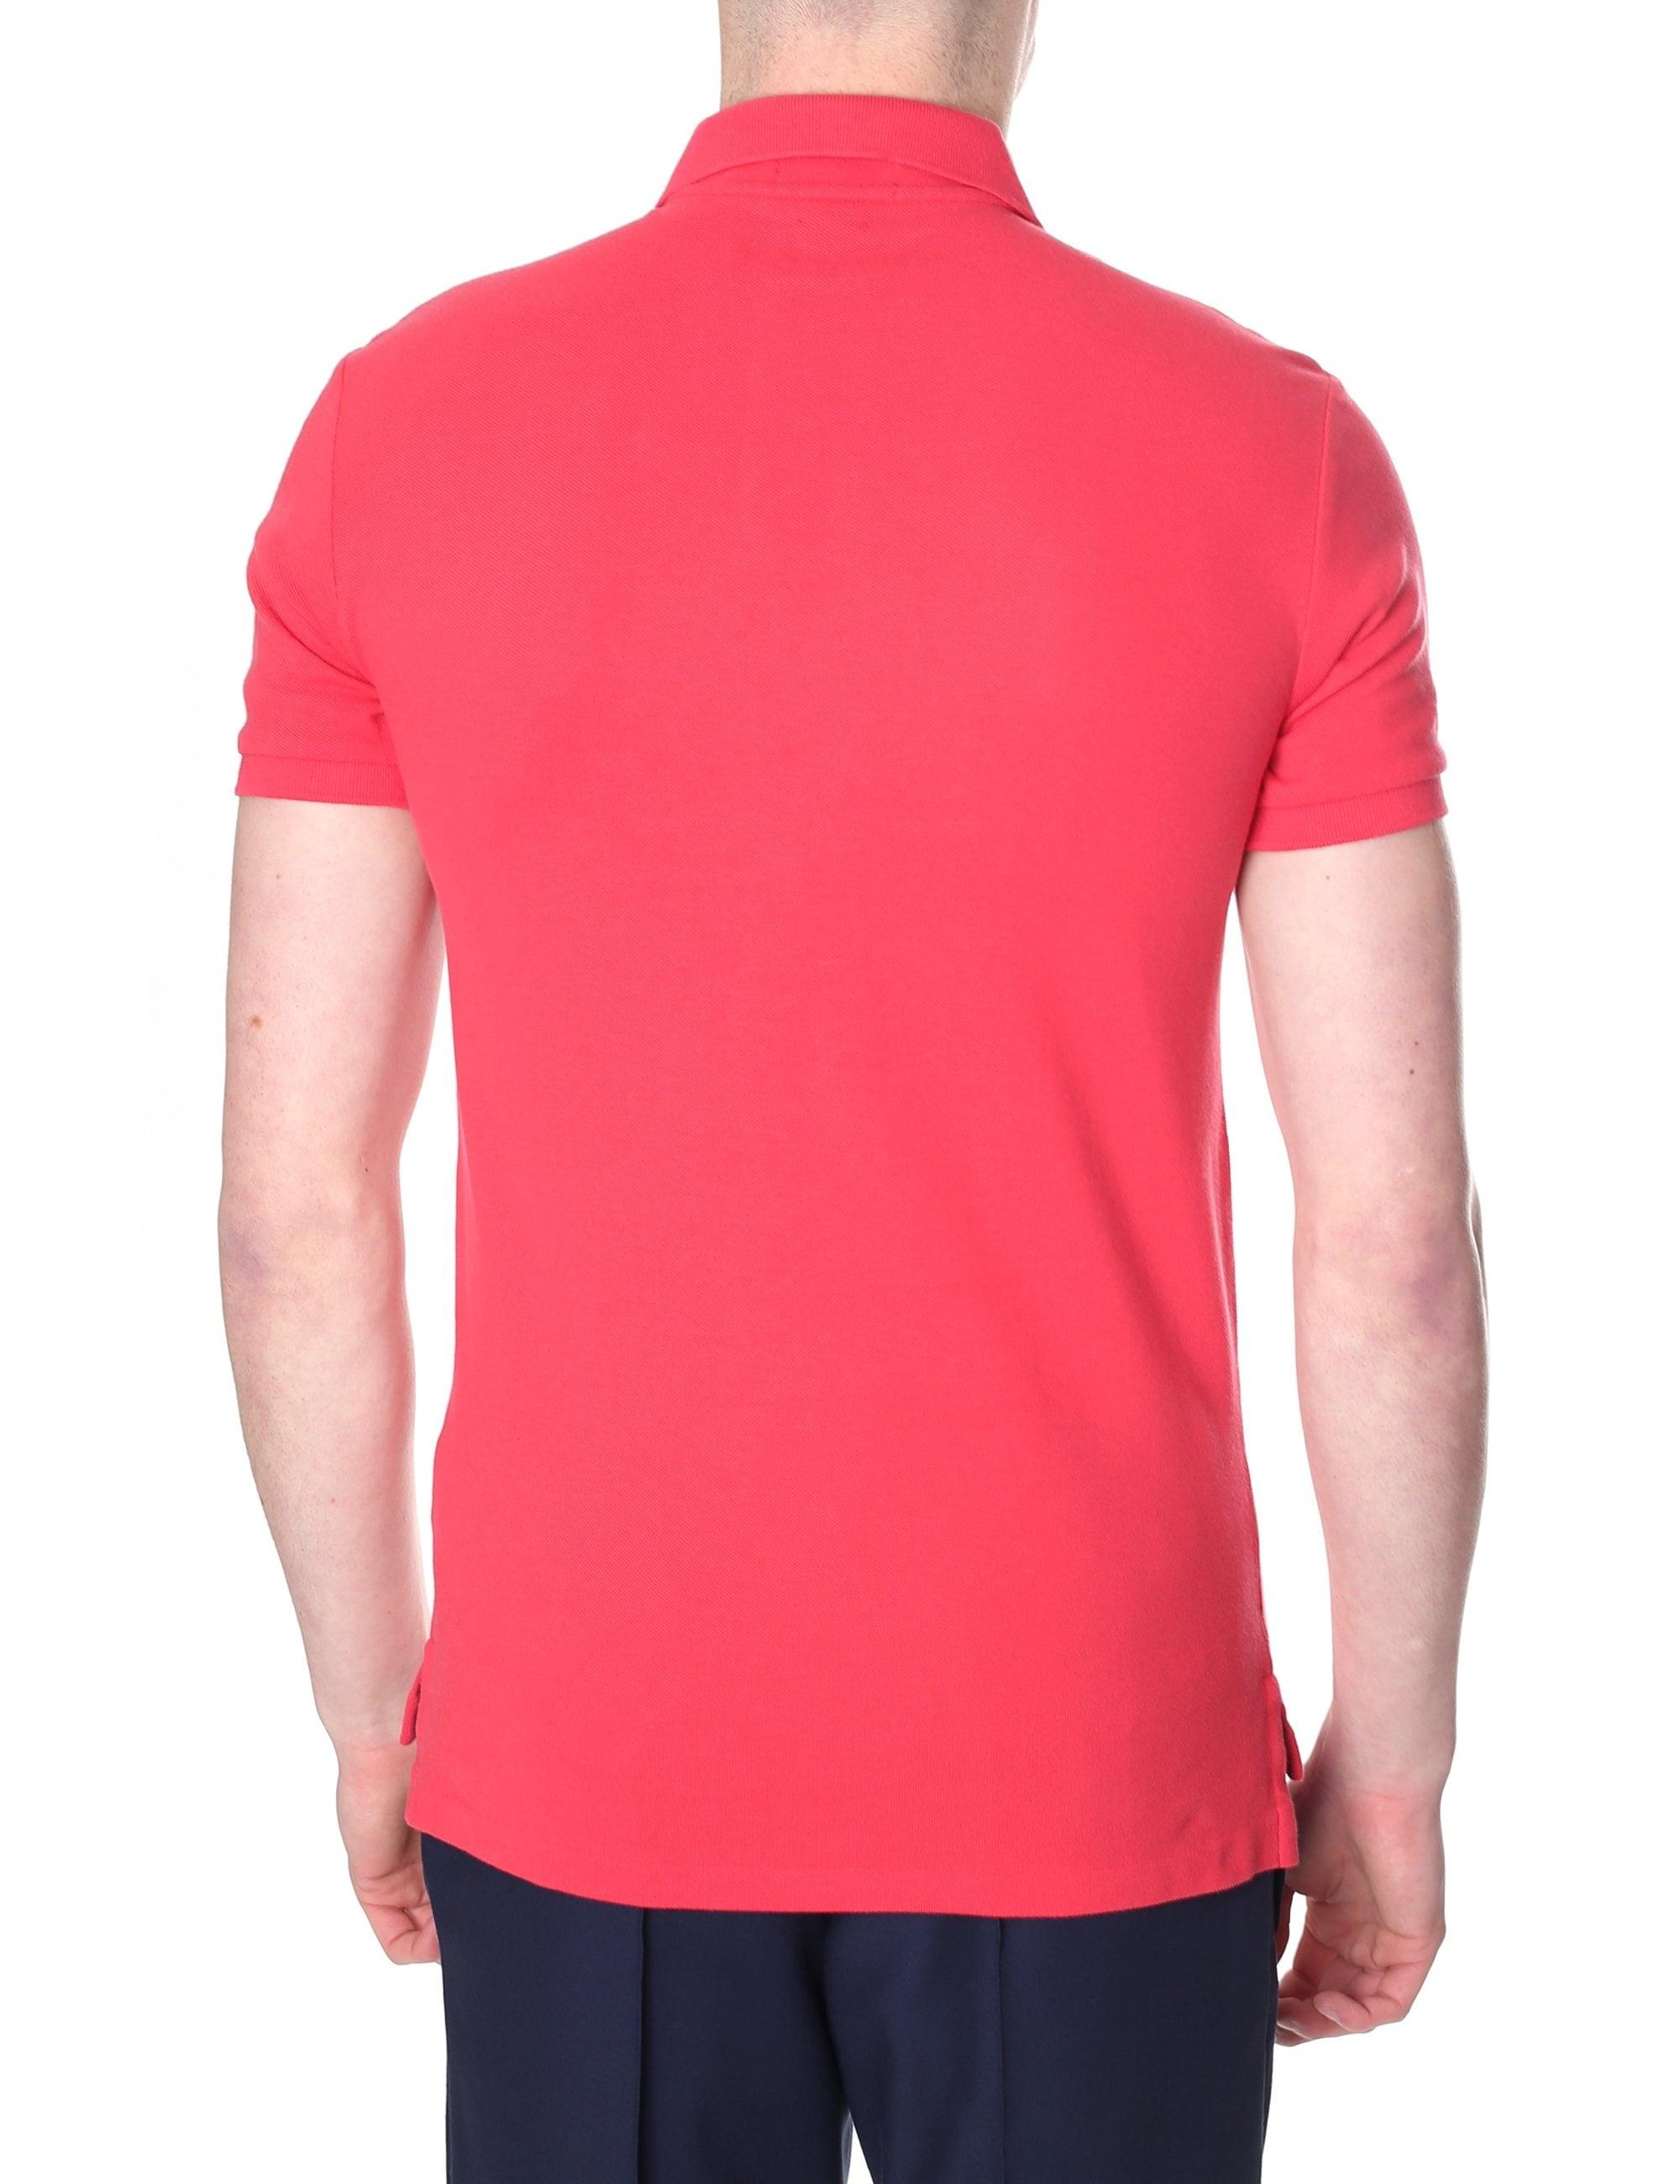 ed84b312dae68 Polo Ralph Lauren Slim Fit Short Sleeve Polo Top in Red for Men - Lyst